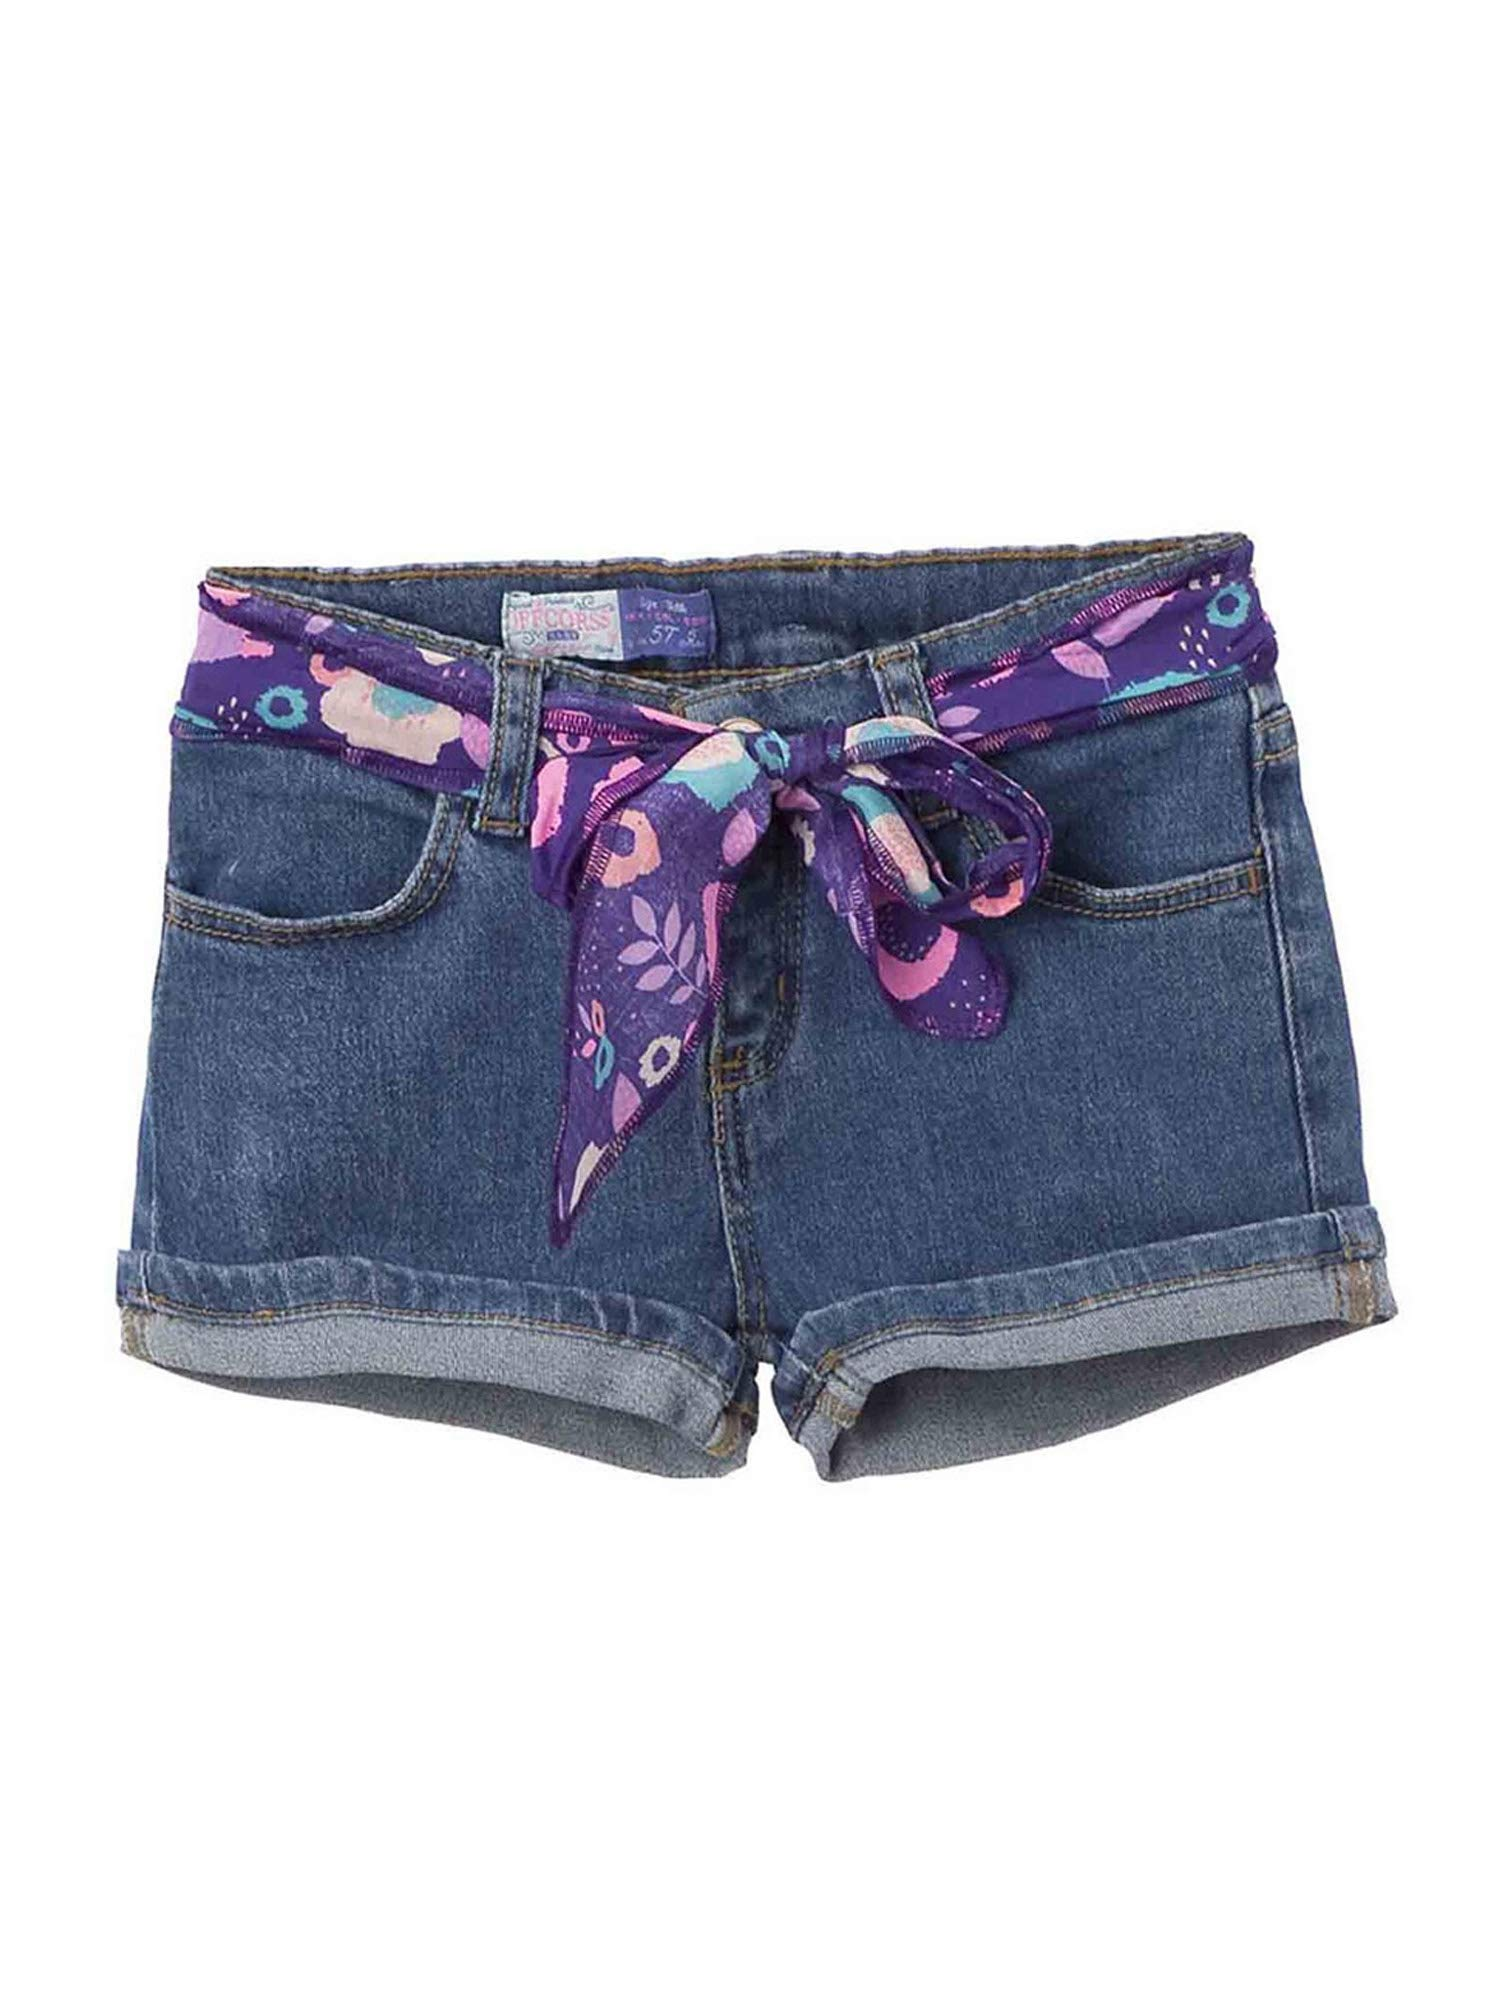 OFFCORSS Toddler Baby Girl Kid Prime Cute Stretchy Slim Loose Denim Jeans Colored Play Shorts for Summer Ropa Casual de Niña para Verano Blue 3T